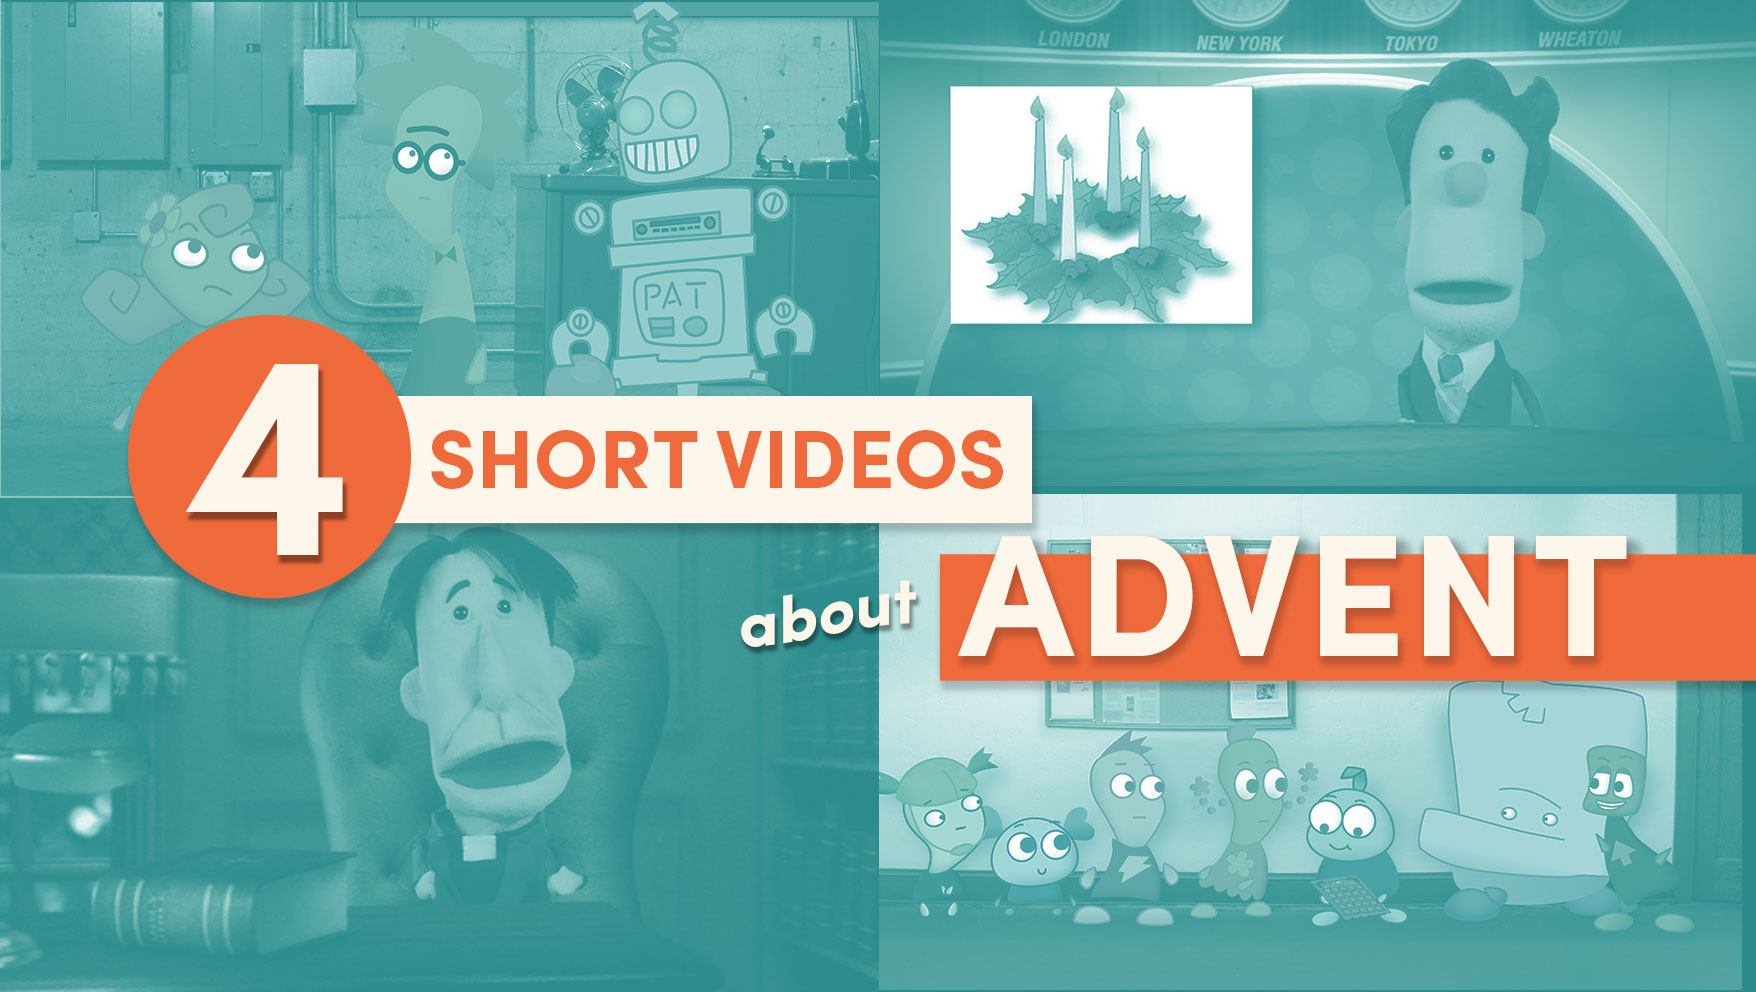 4 Short Videos About Advent